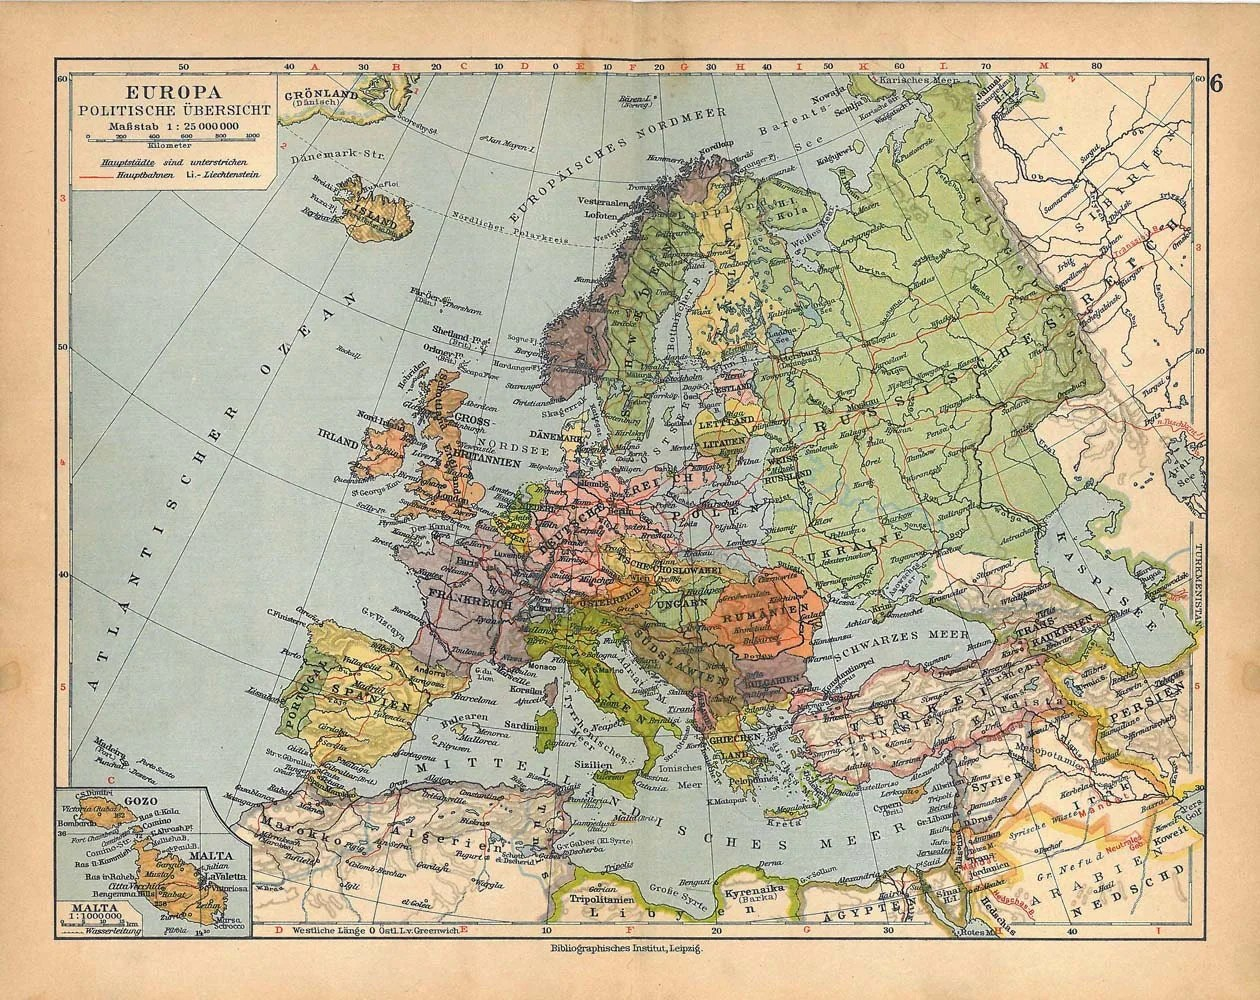 Best Reserved 1928 Europe Vintage Map Political Division Wall Decor This Month